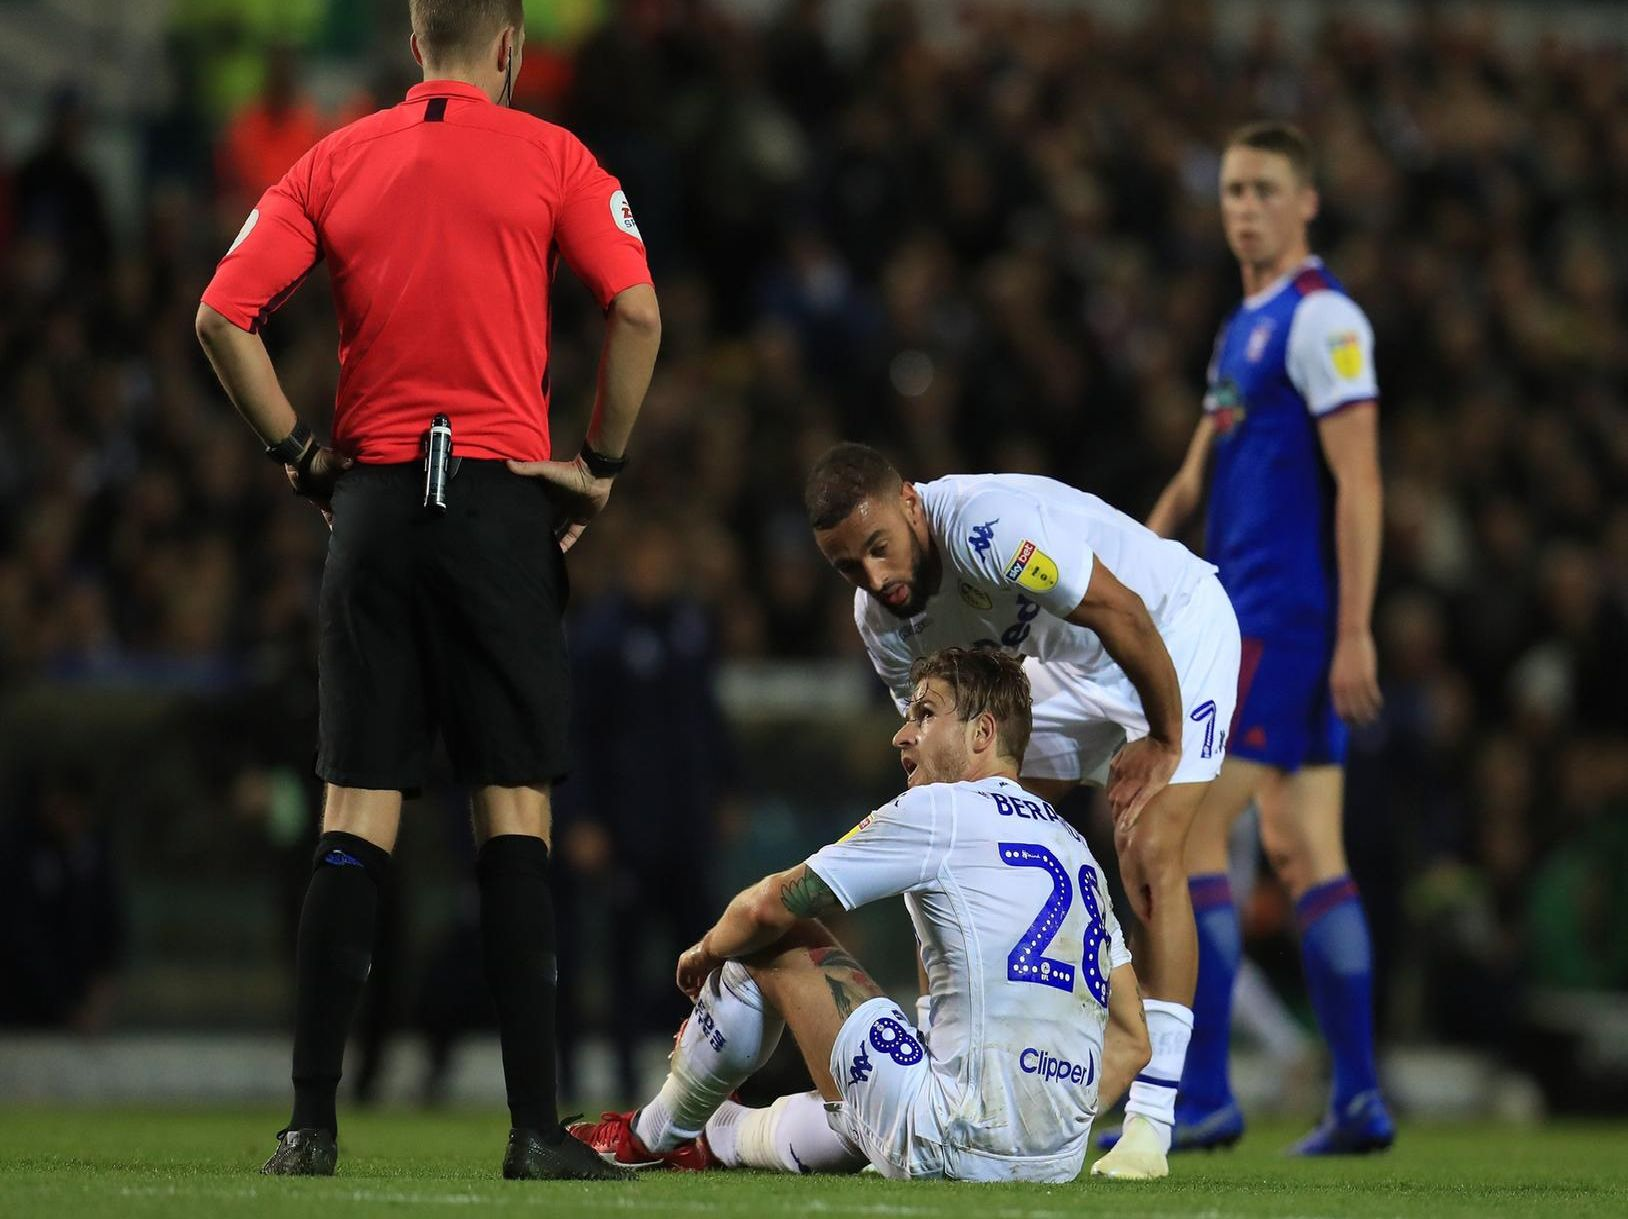 Leeds United defender Gaetano Berardi picks up a hamstring injury against Ipswich Town.